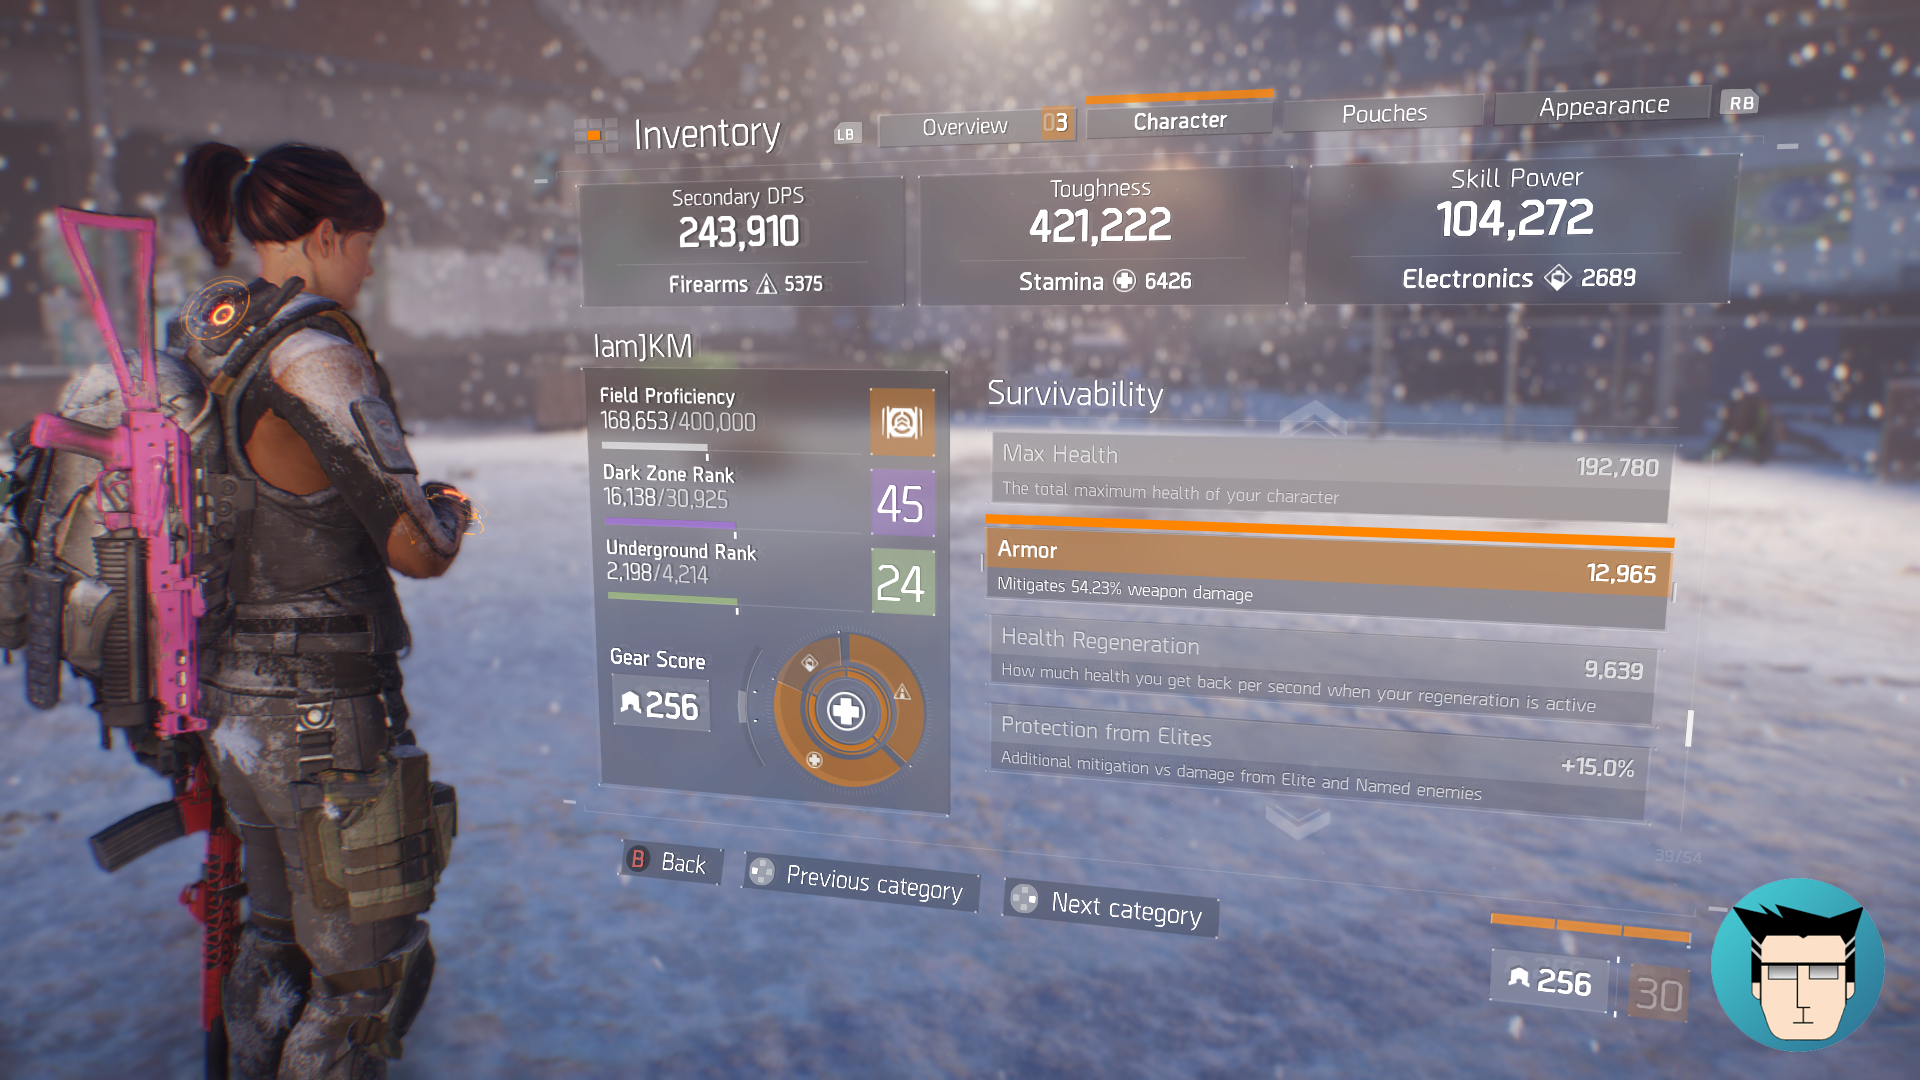 Character Sheet   Armor Mitigation at 54.23%, Buffed with Pulse: Tactical Scanner